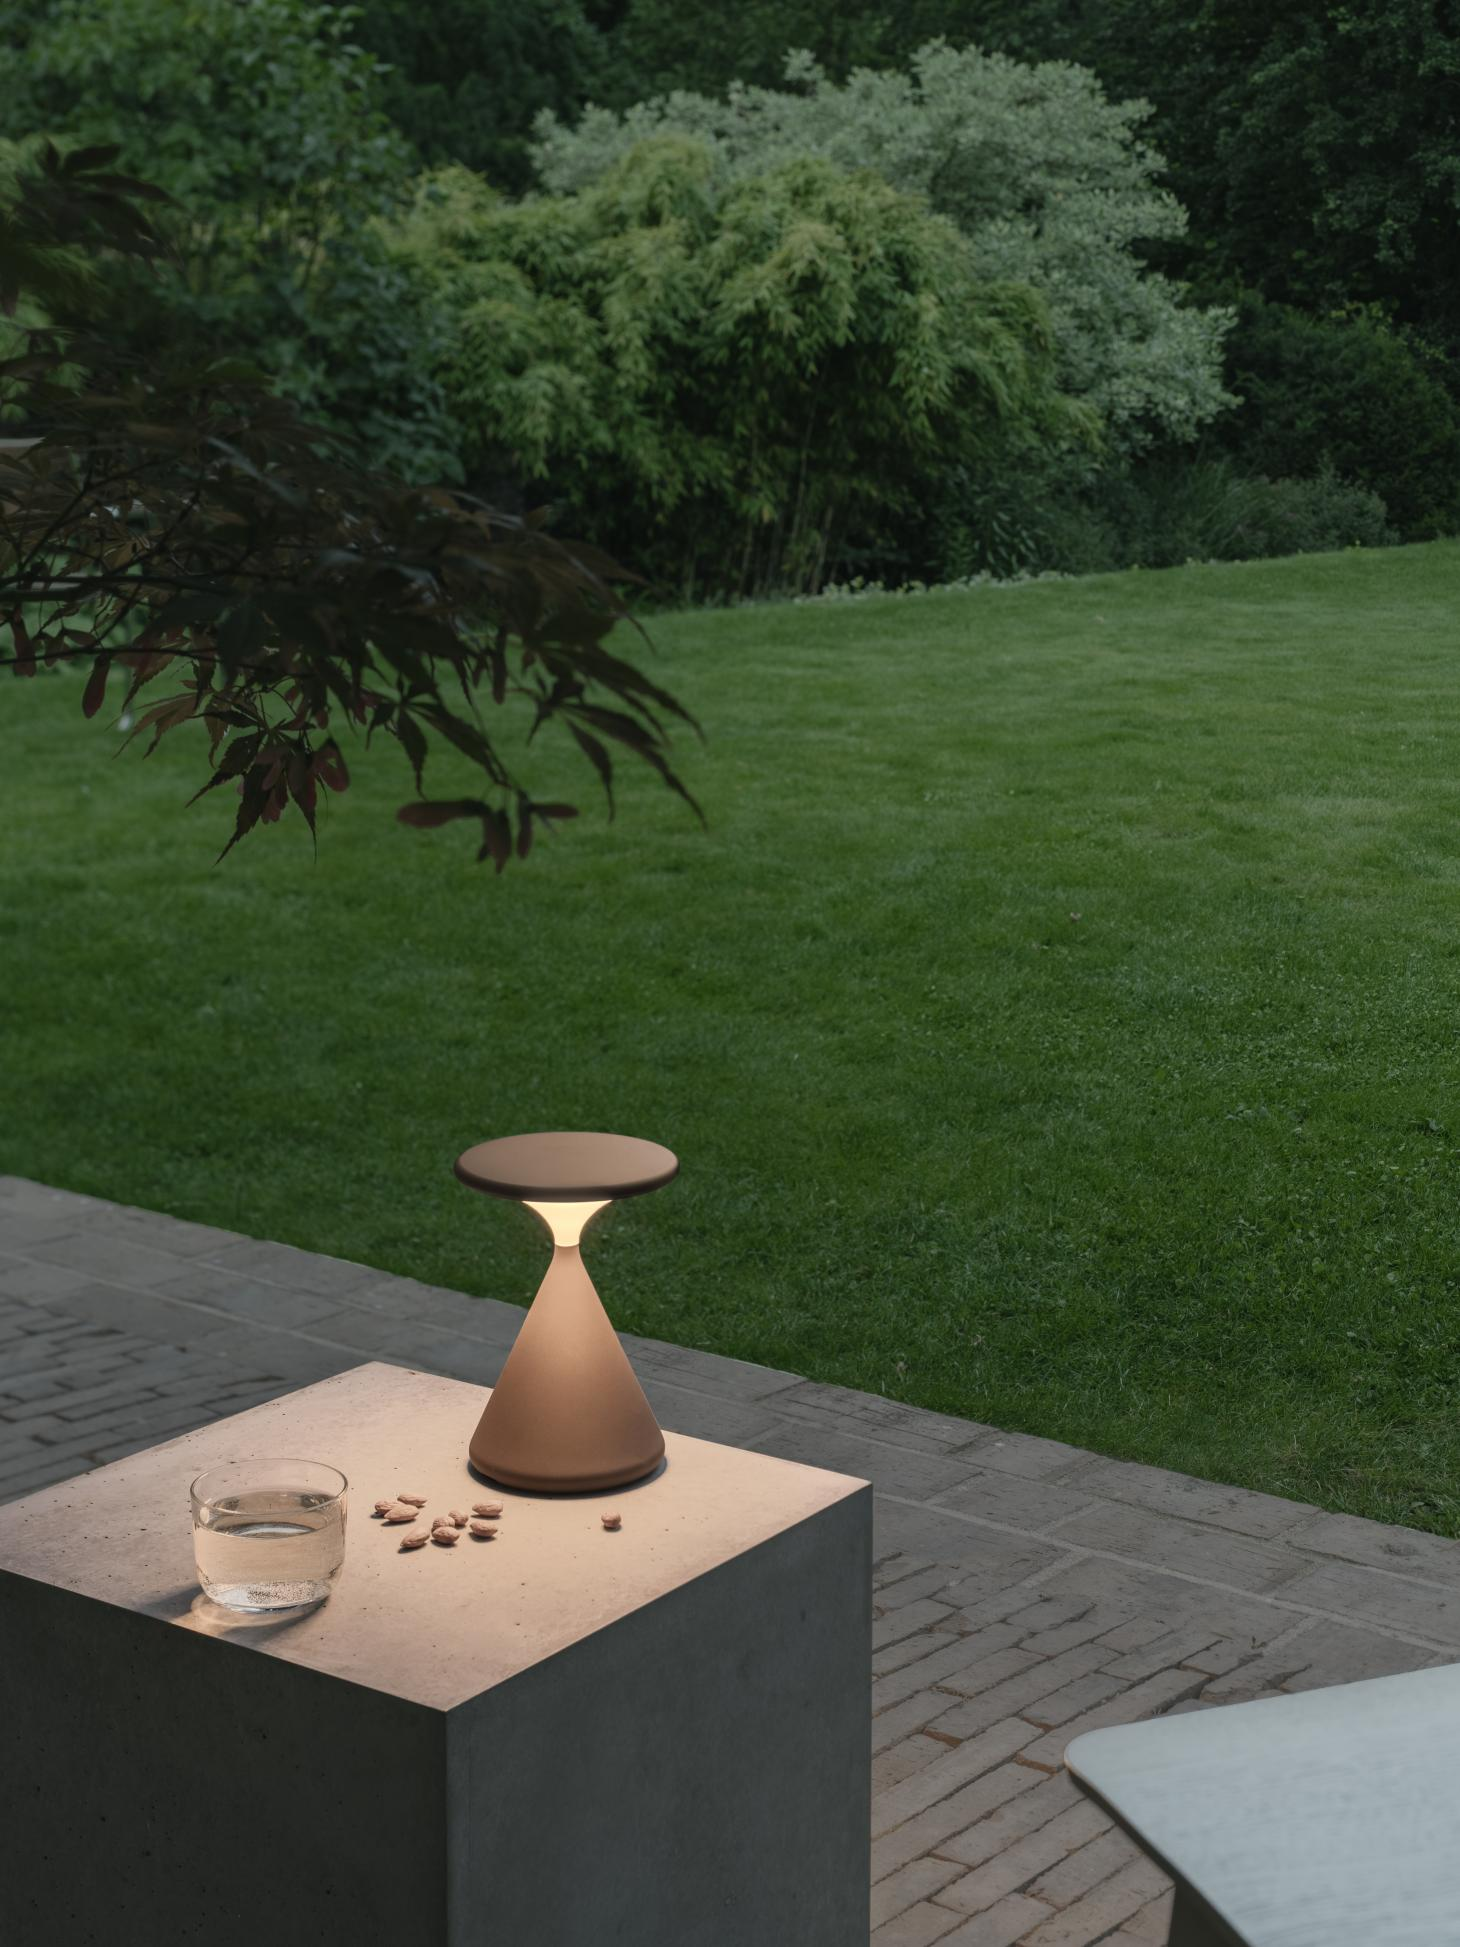 A garden photographed in the evening, with a concrete plinth holding a glass of water and an hourglass-shaped portable lamp by Tobias Grau